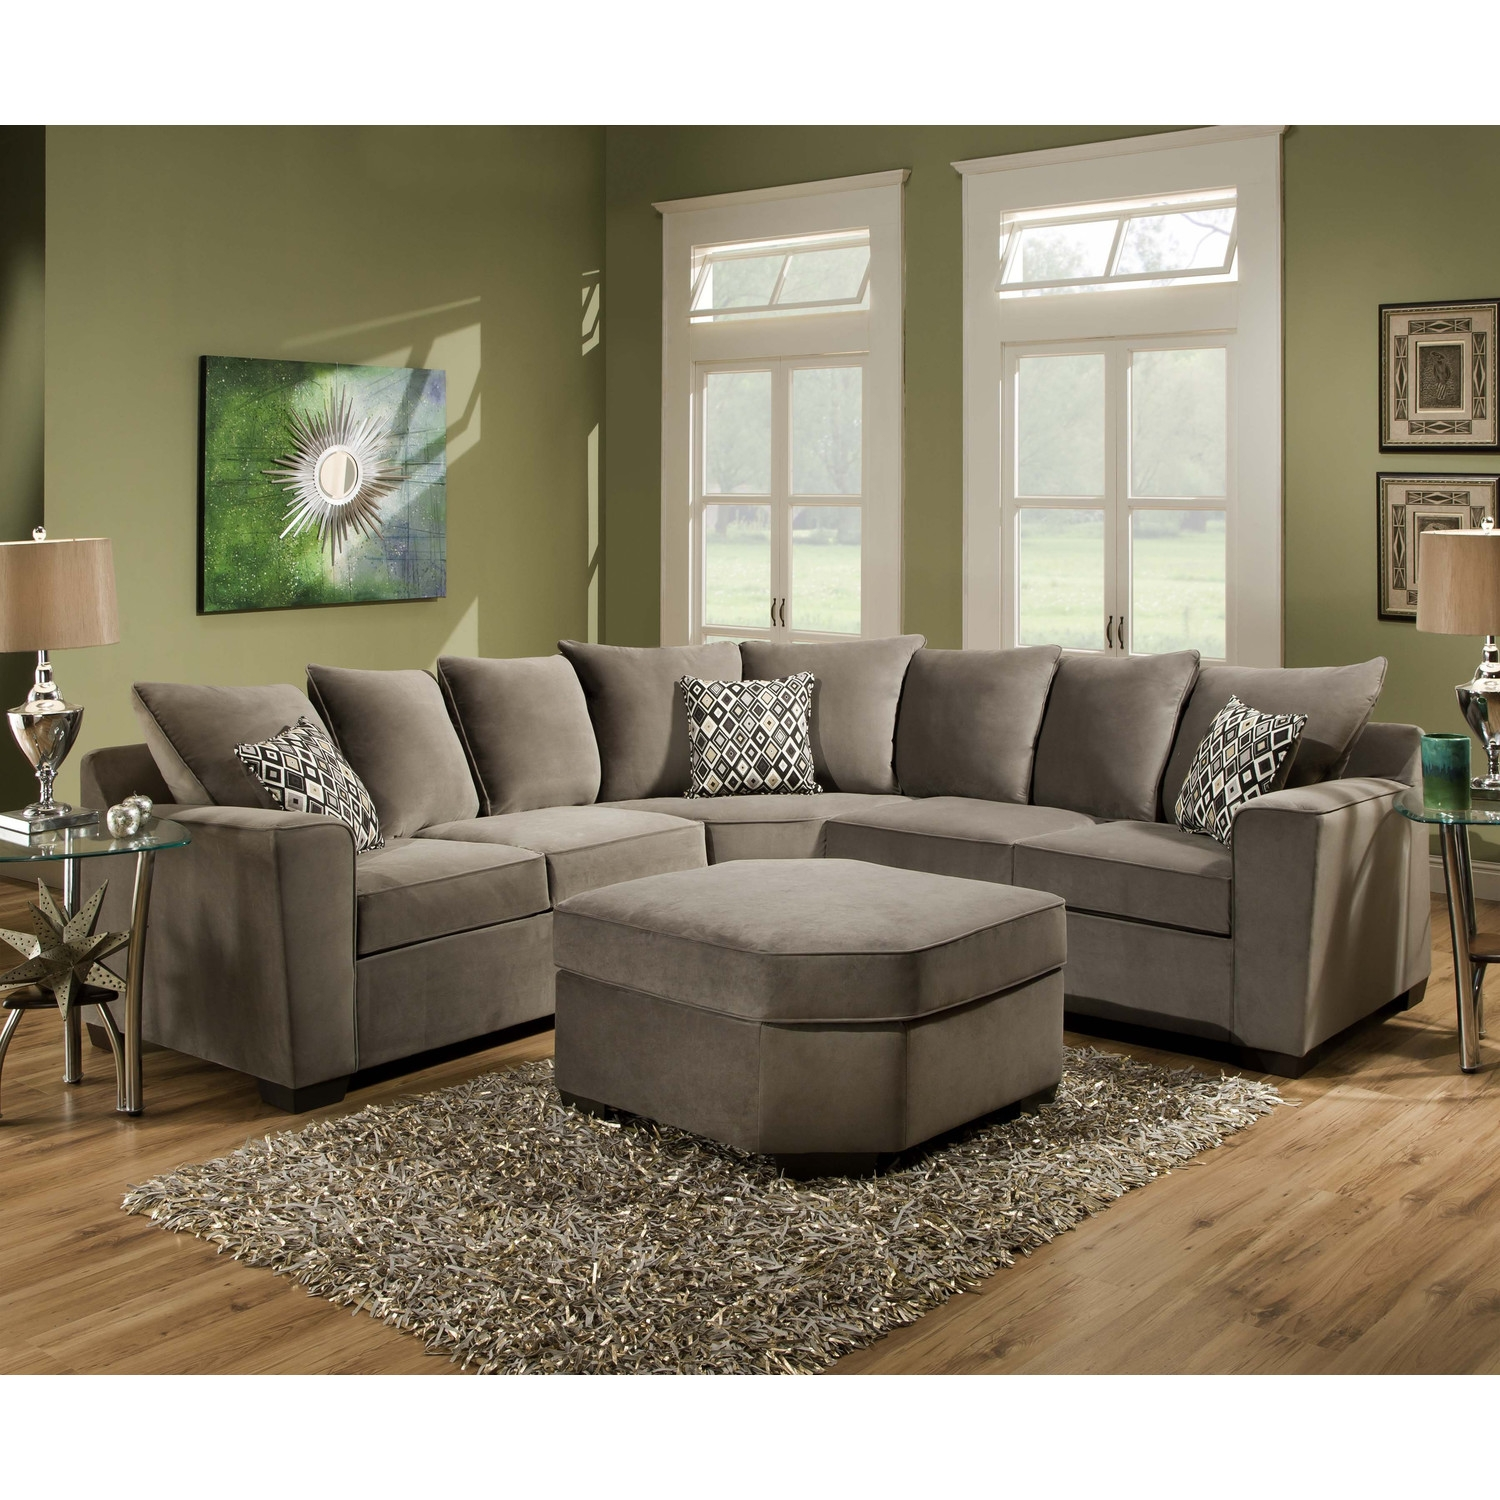 Furniture Comfy Design Of Oversized Couch For Charming Living For Comfy Sectional Sofa (Image 12 of 15)